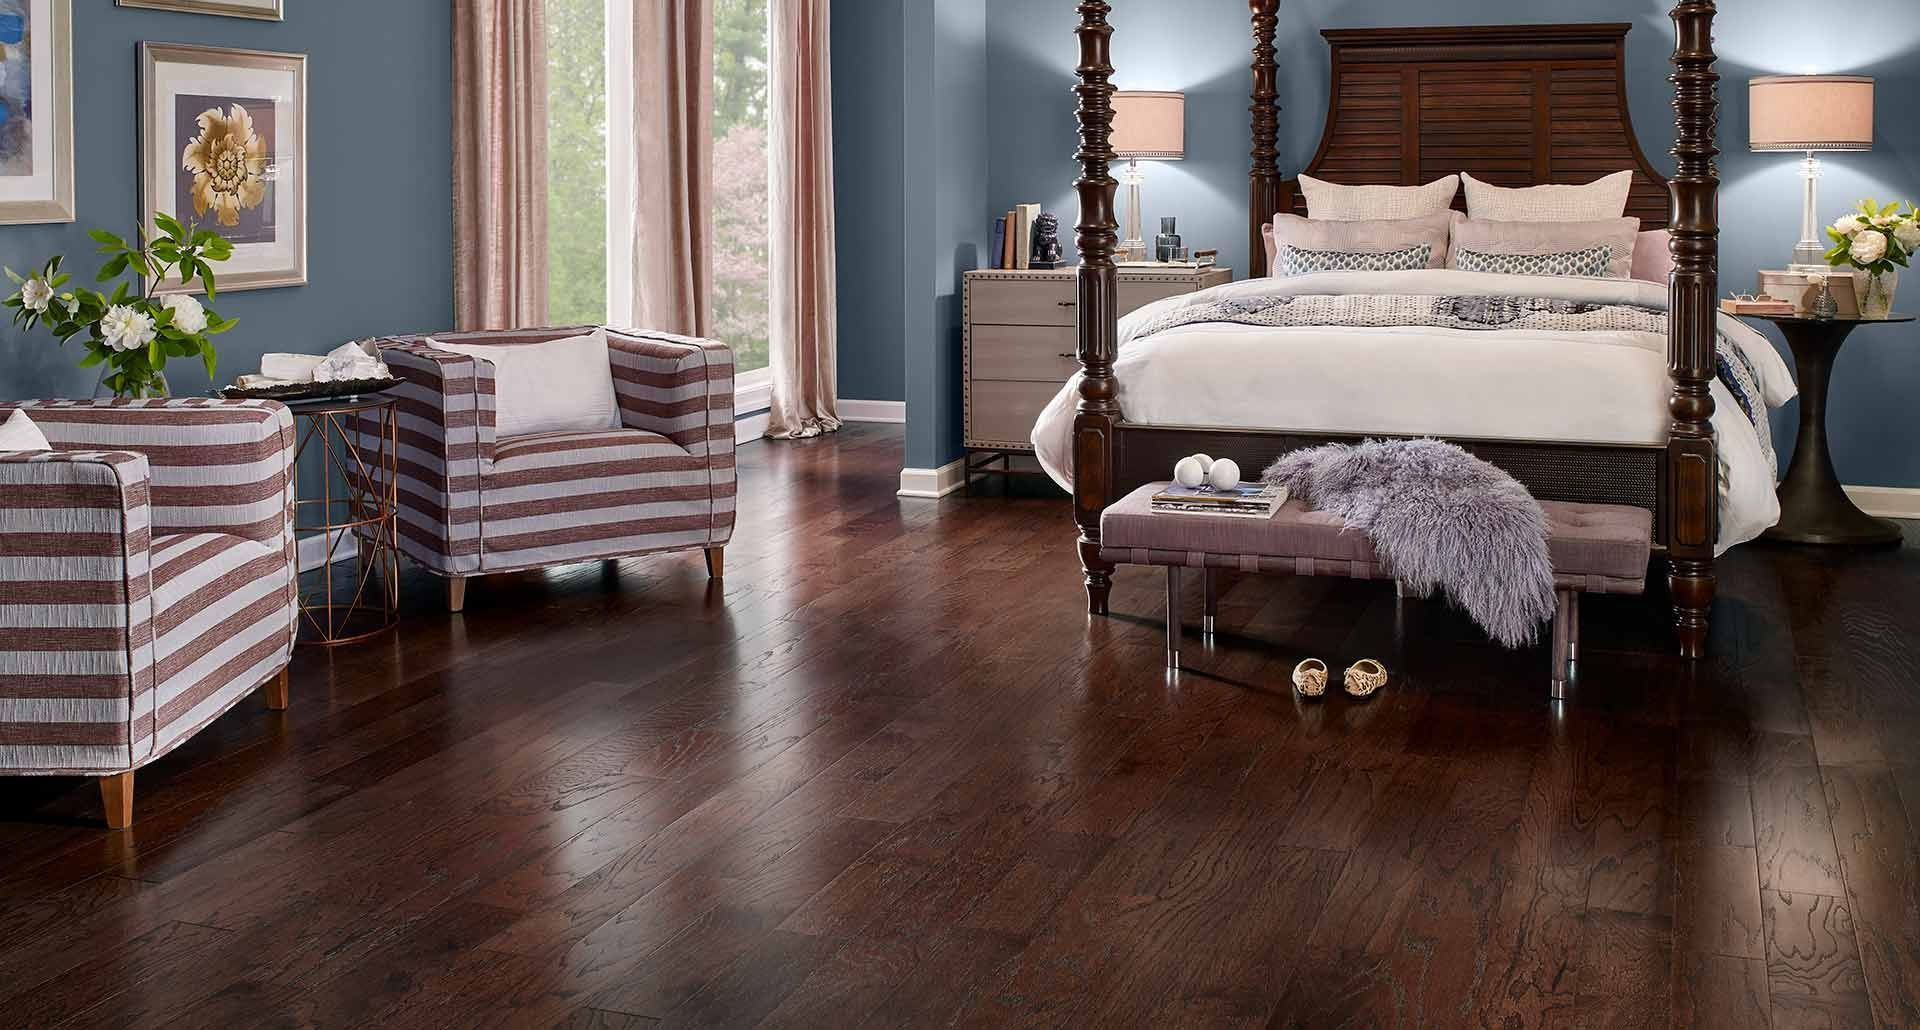 chocolate oak hardwood floors pergo inspiration project source 805in w x 396ft l natural oak smooth wood plank